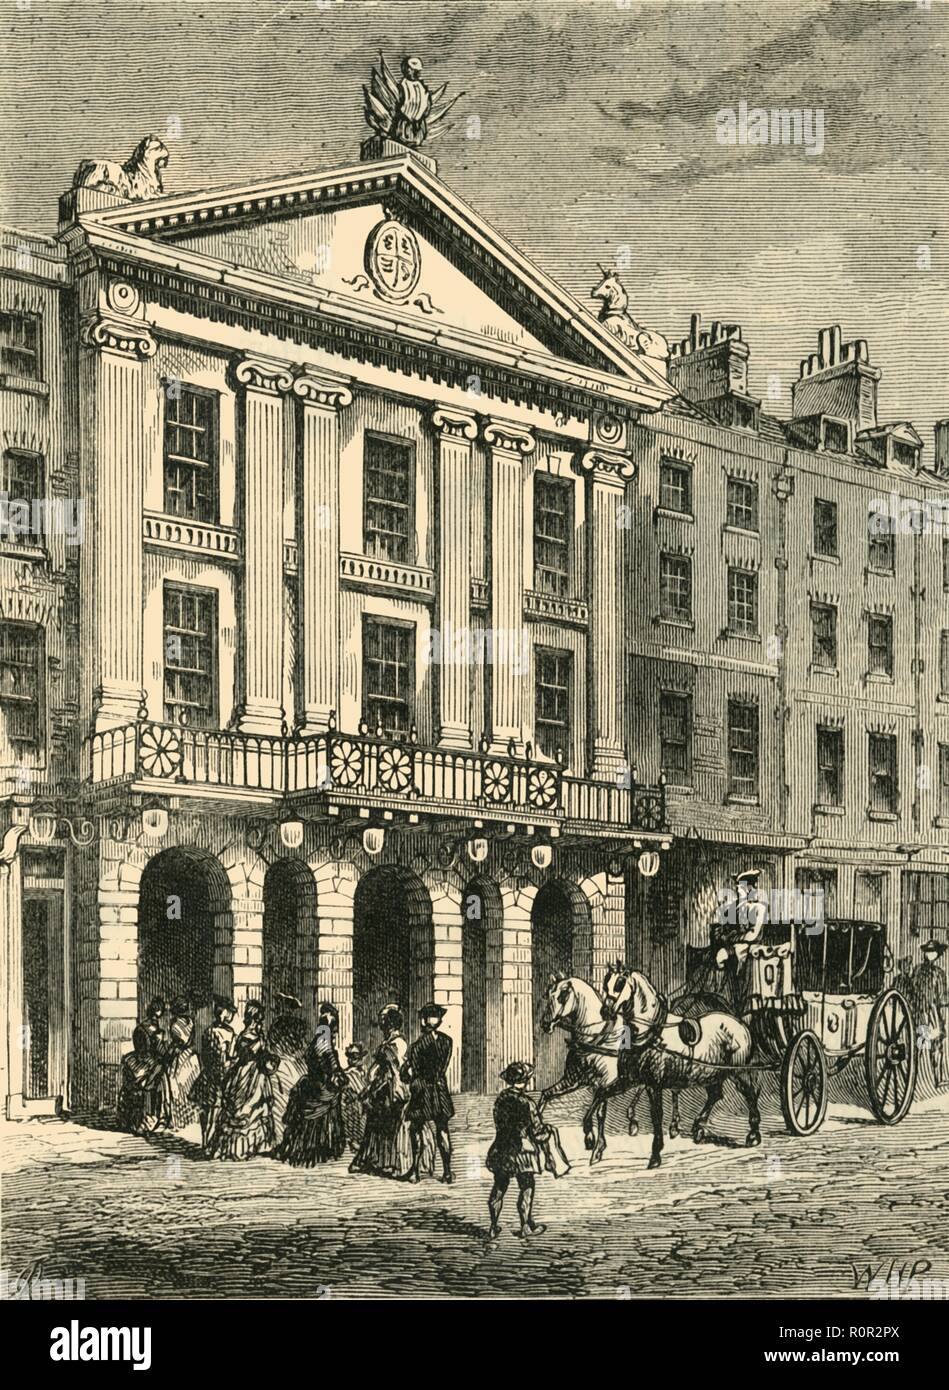 'Front of Old Drury Lane Theatre', (1881). Creator: Unknown. - Stock Image